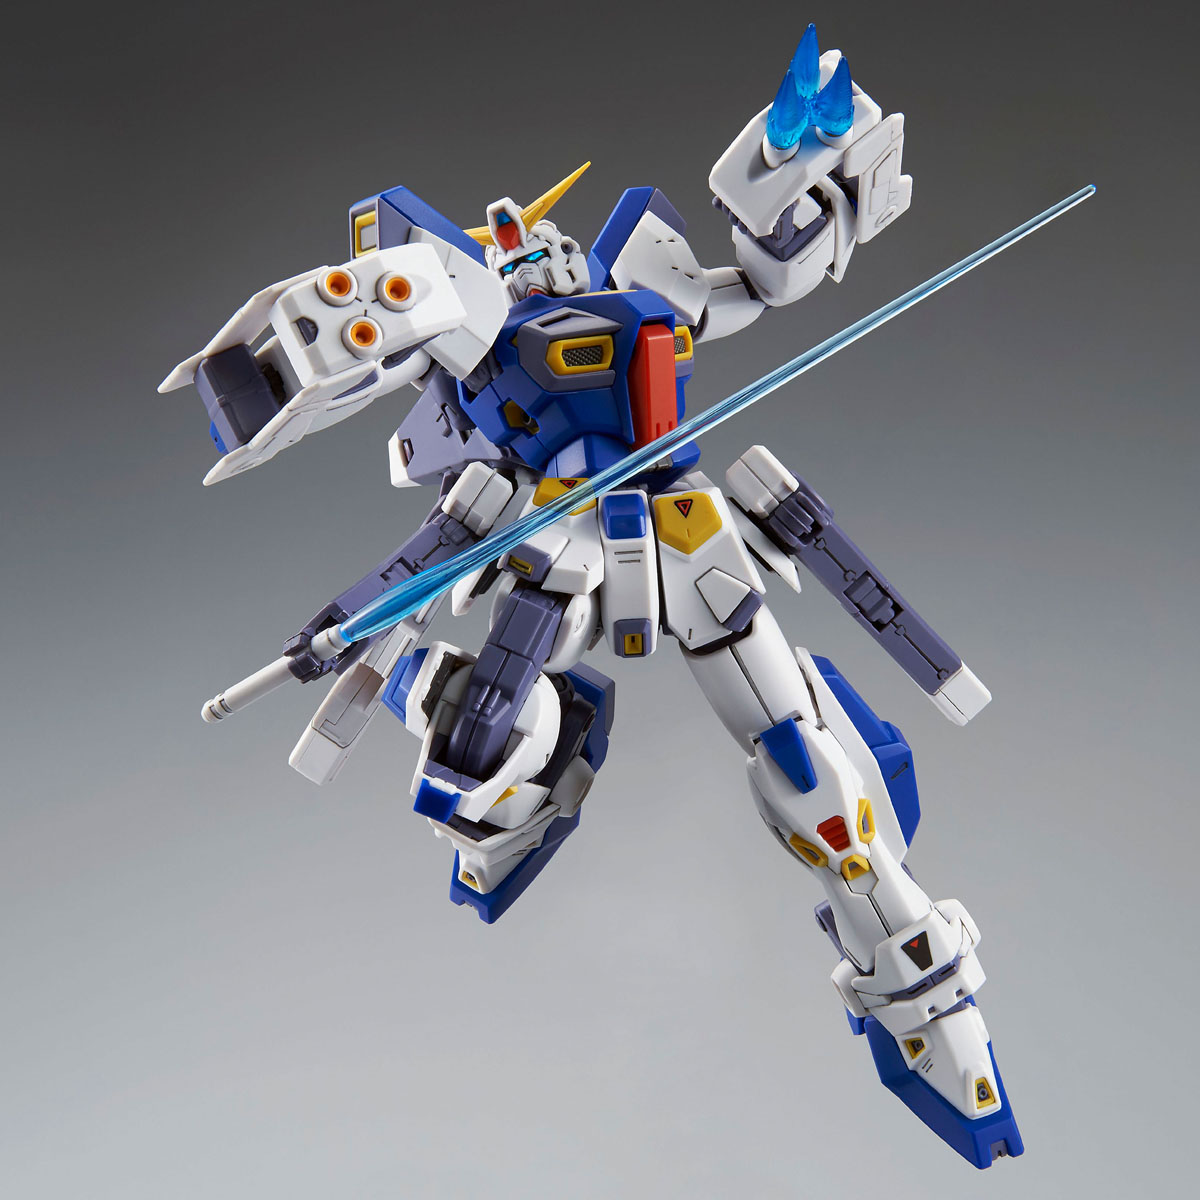 MG 1/100 MISSION PACK F TYPE & M TYPE for GUNDAM F90